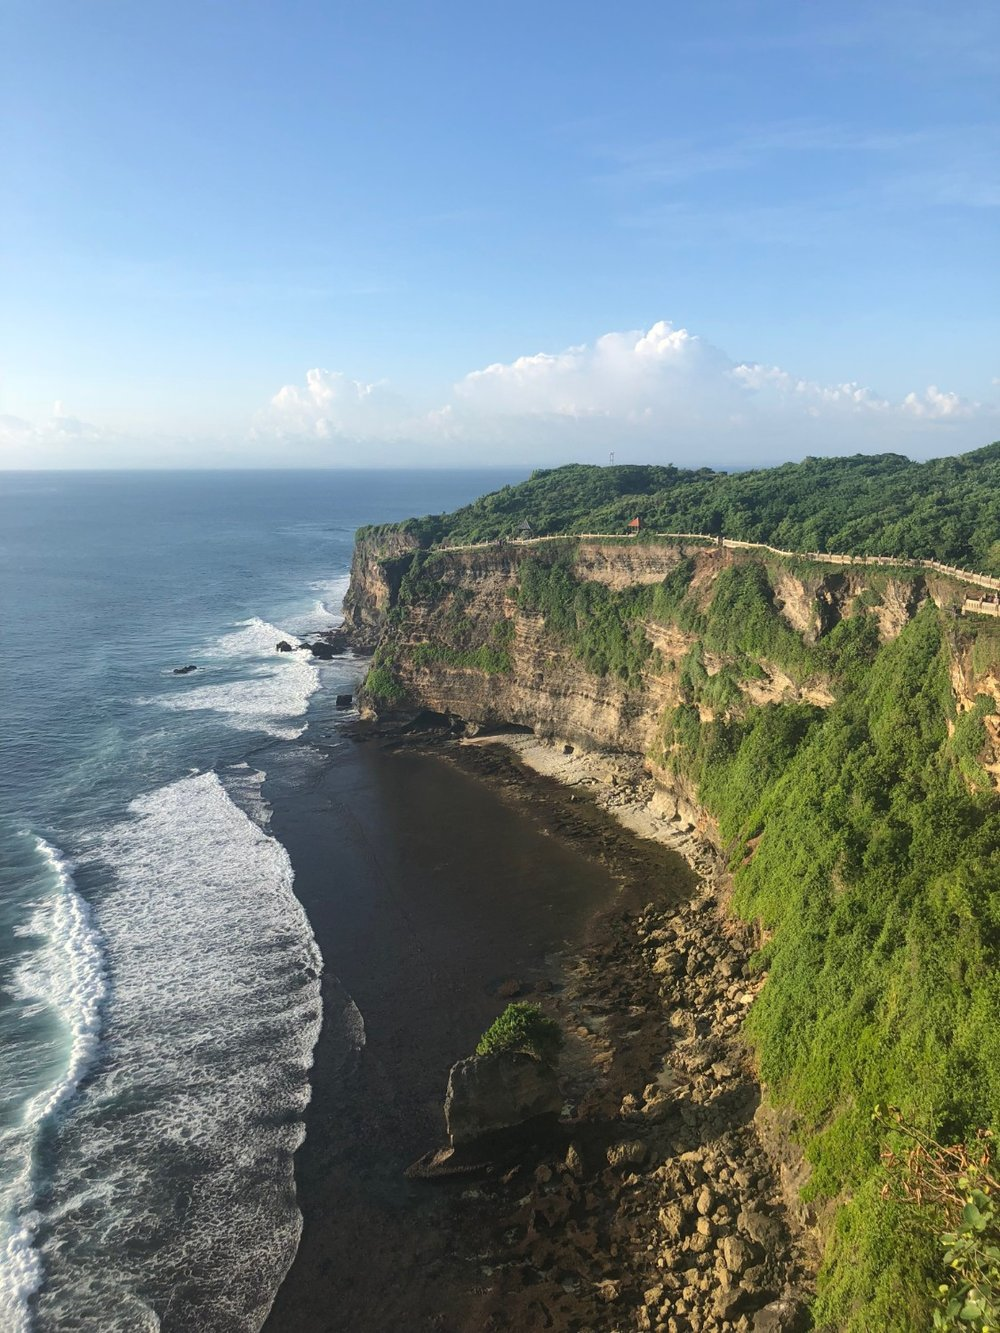 The Cliffs of Uluwatu, Bali. boldlygotravel.com